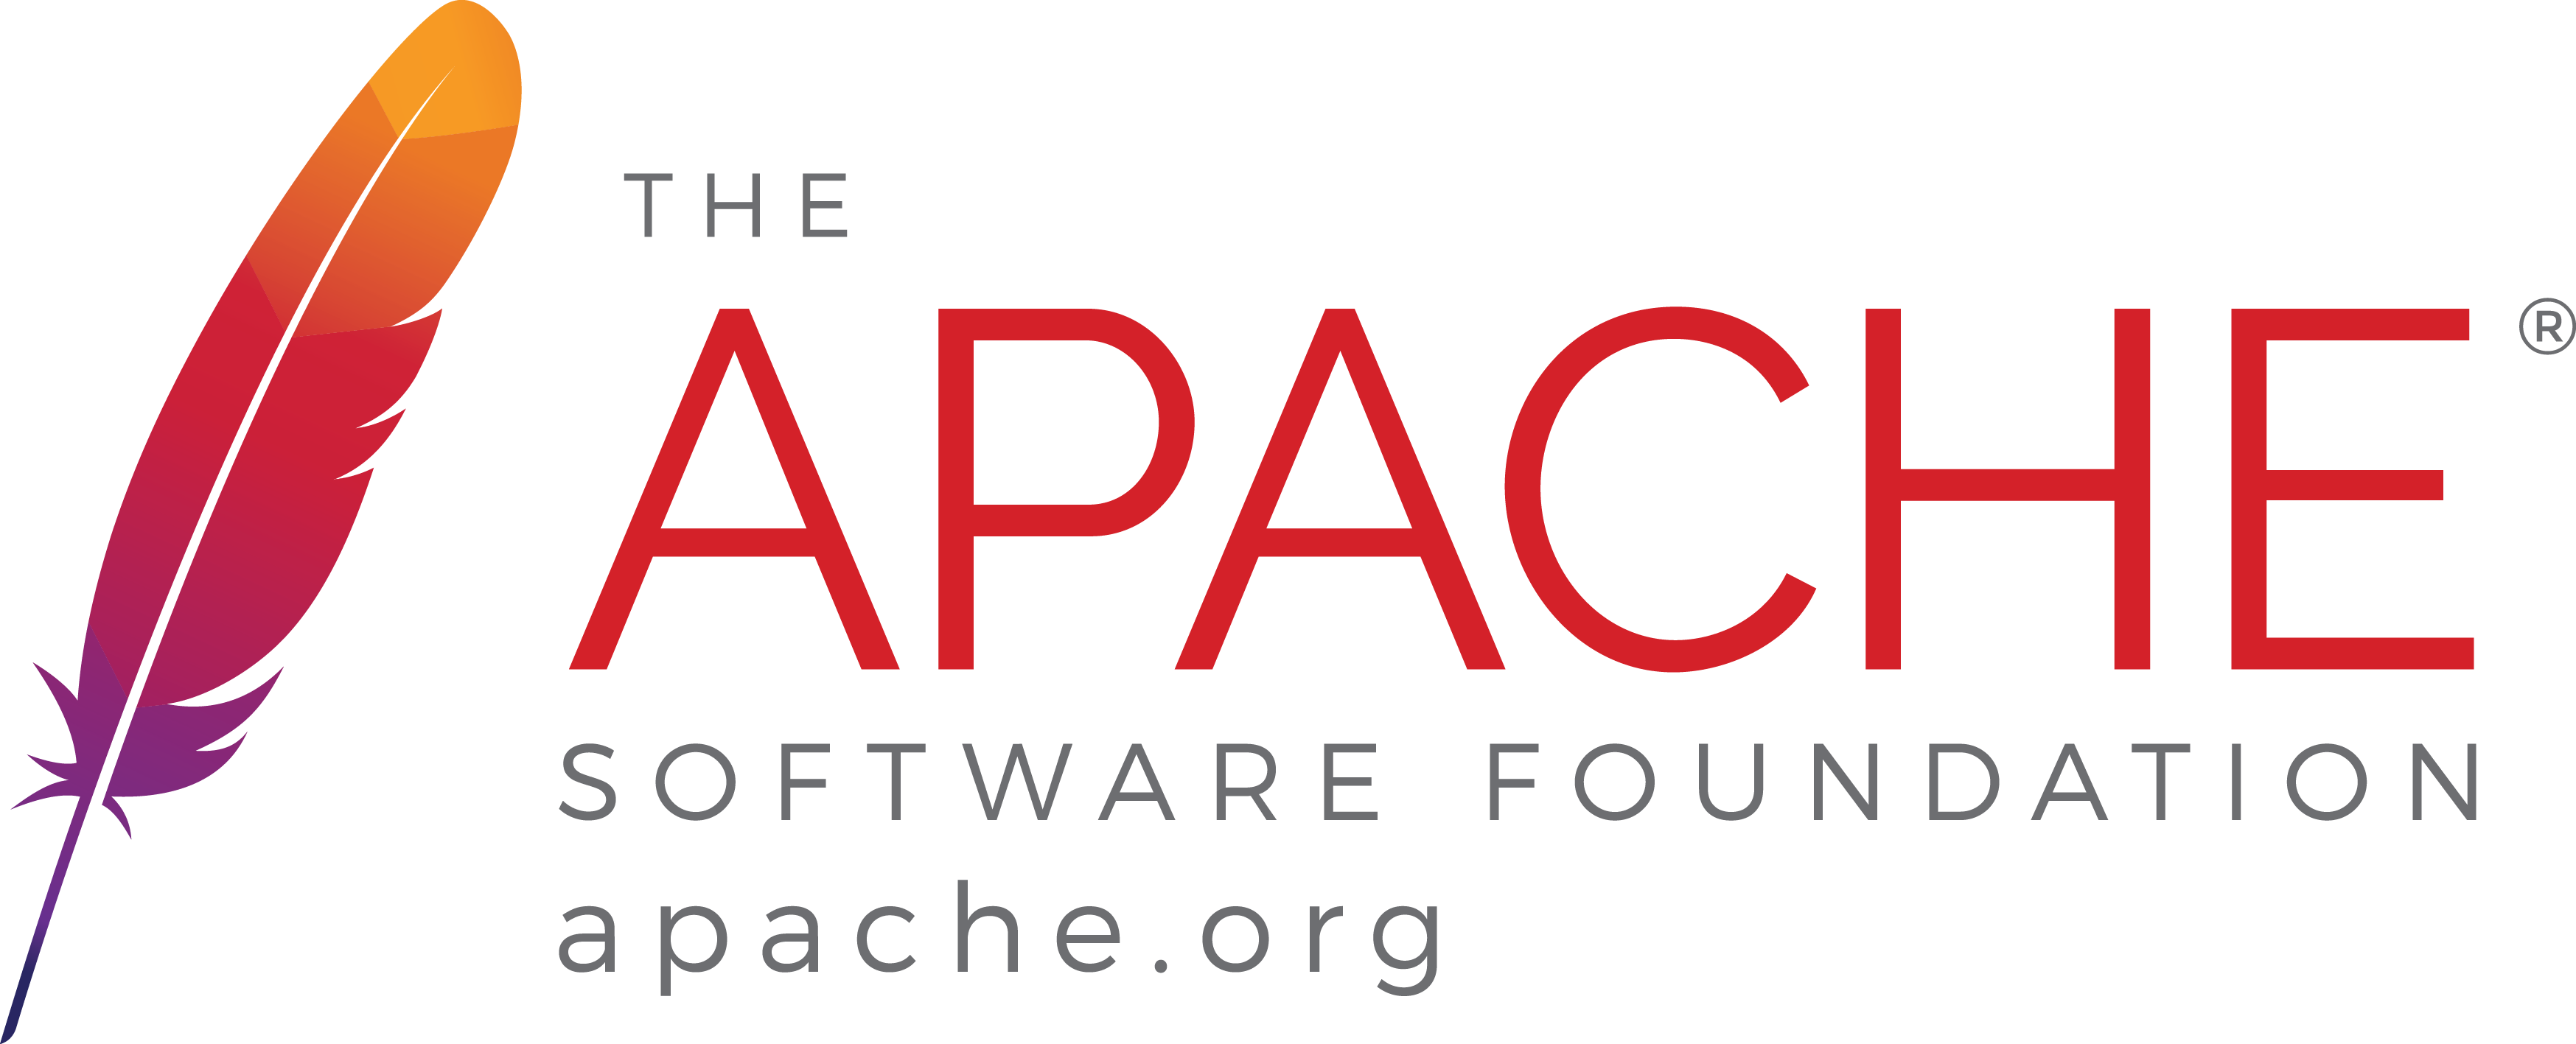 Apache software foundation graphics. Svg syntax jpg black and white